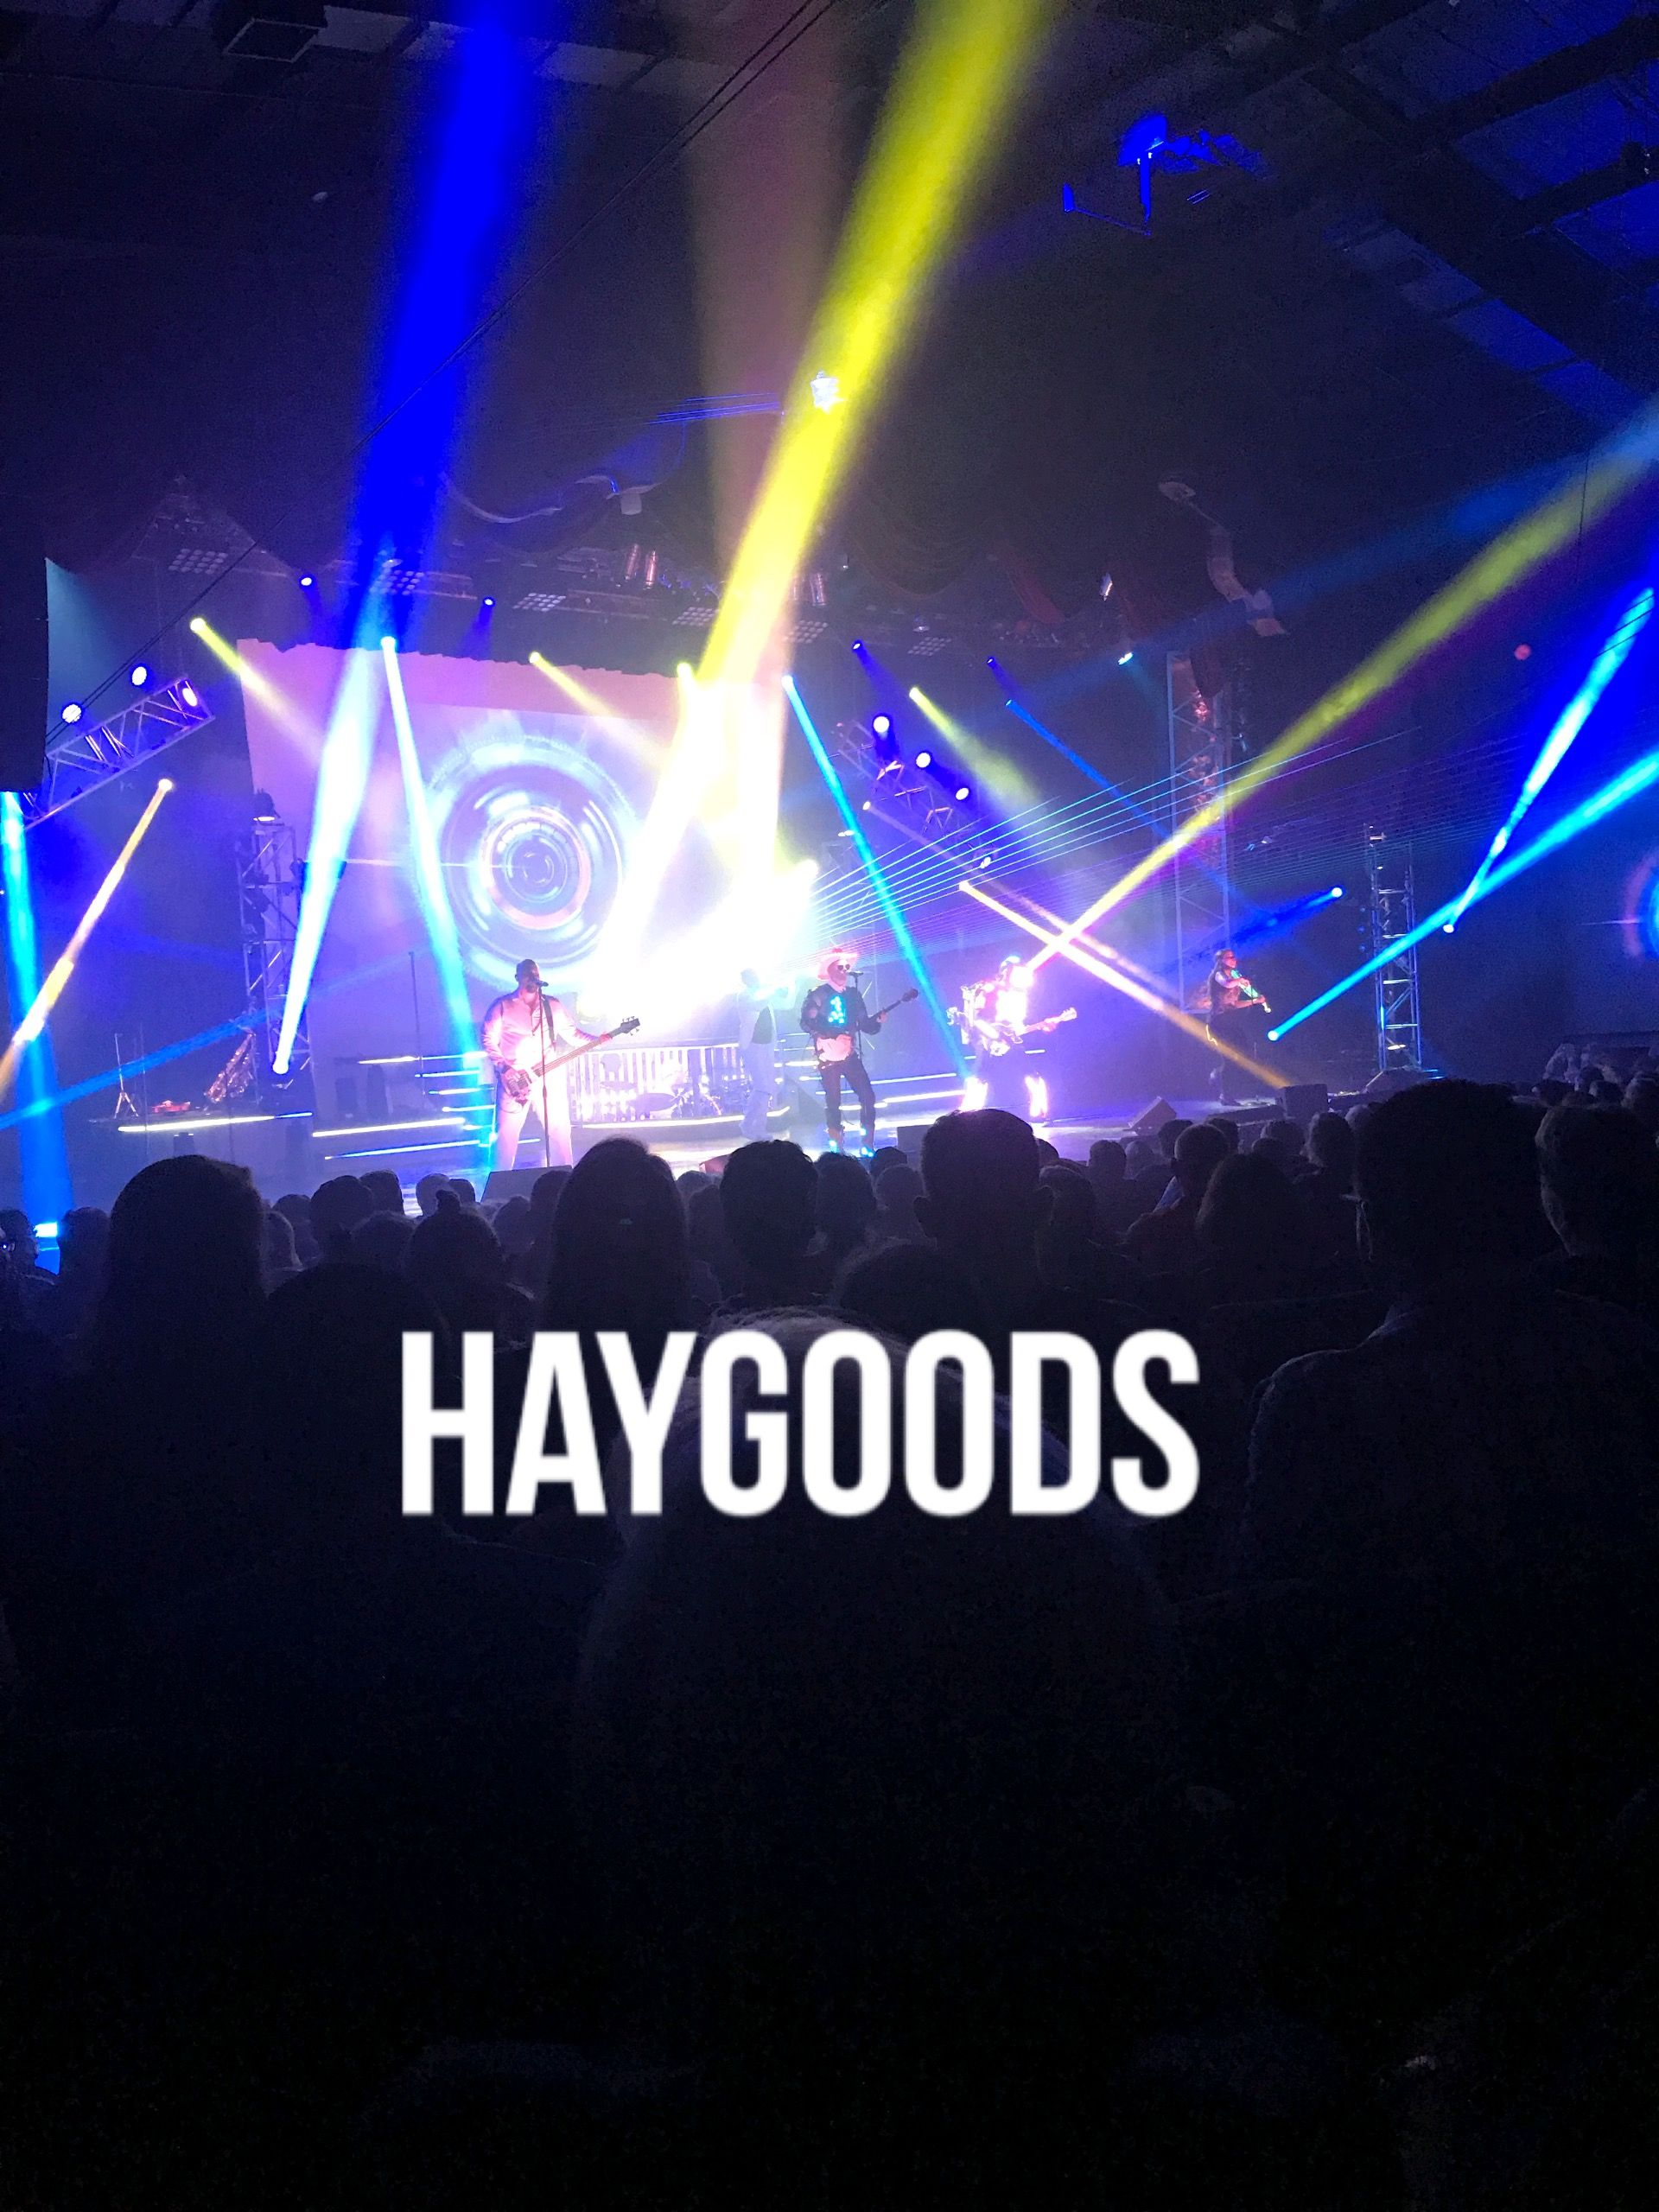 The Haygoods Perform with Lights